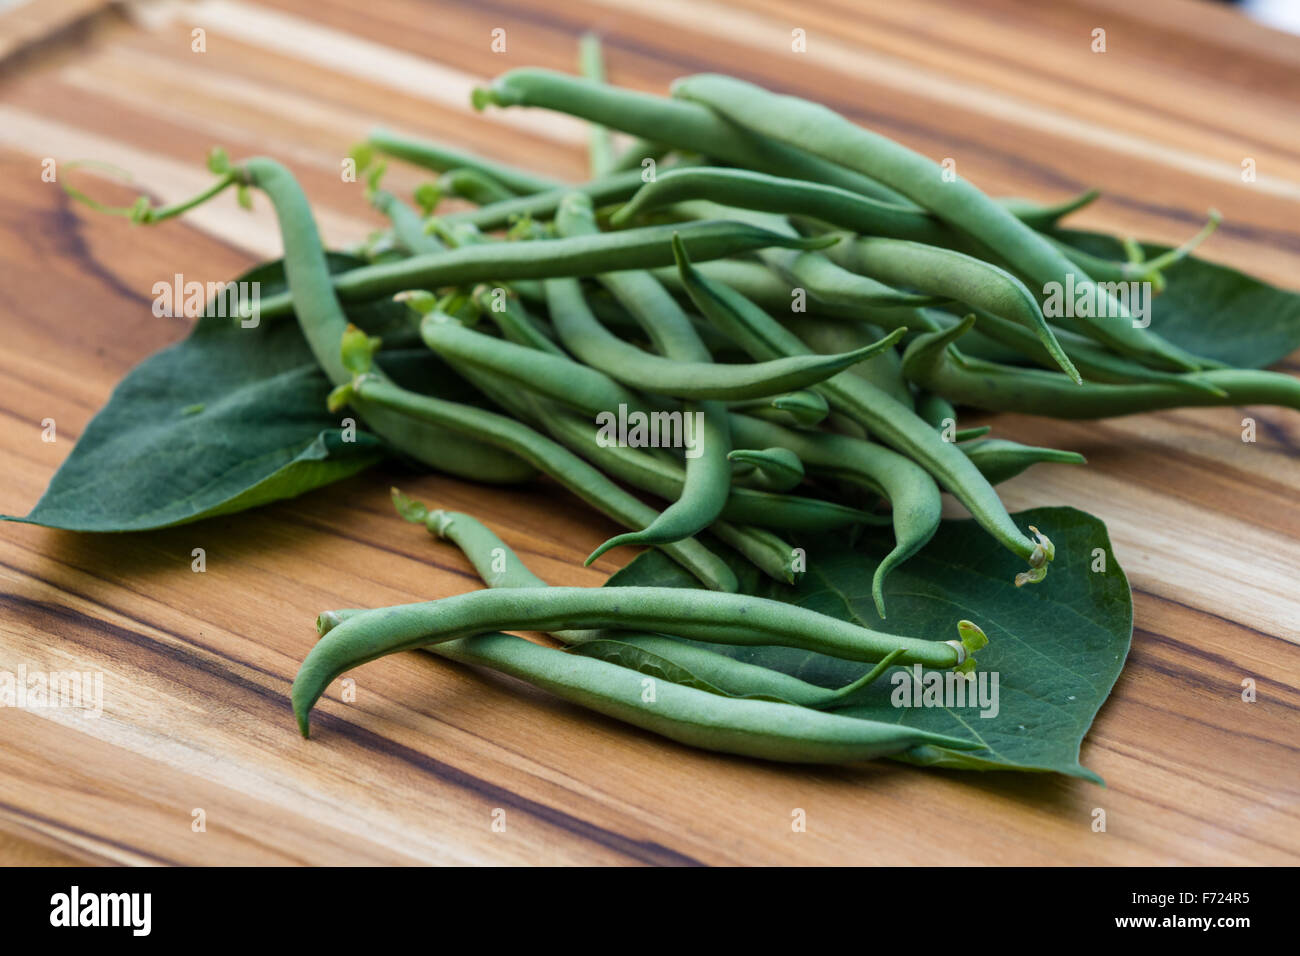 freshly picked organic green beans placed on a wooden table Stock Photo